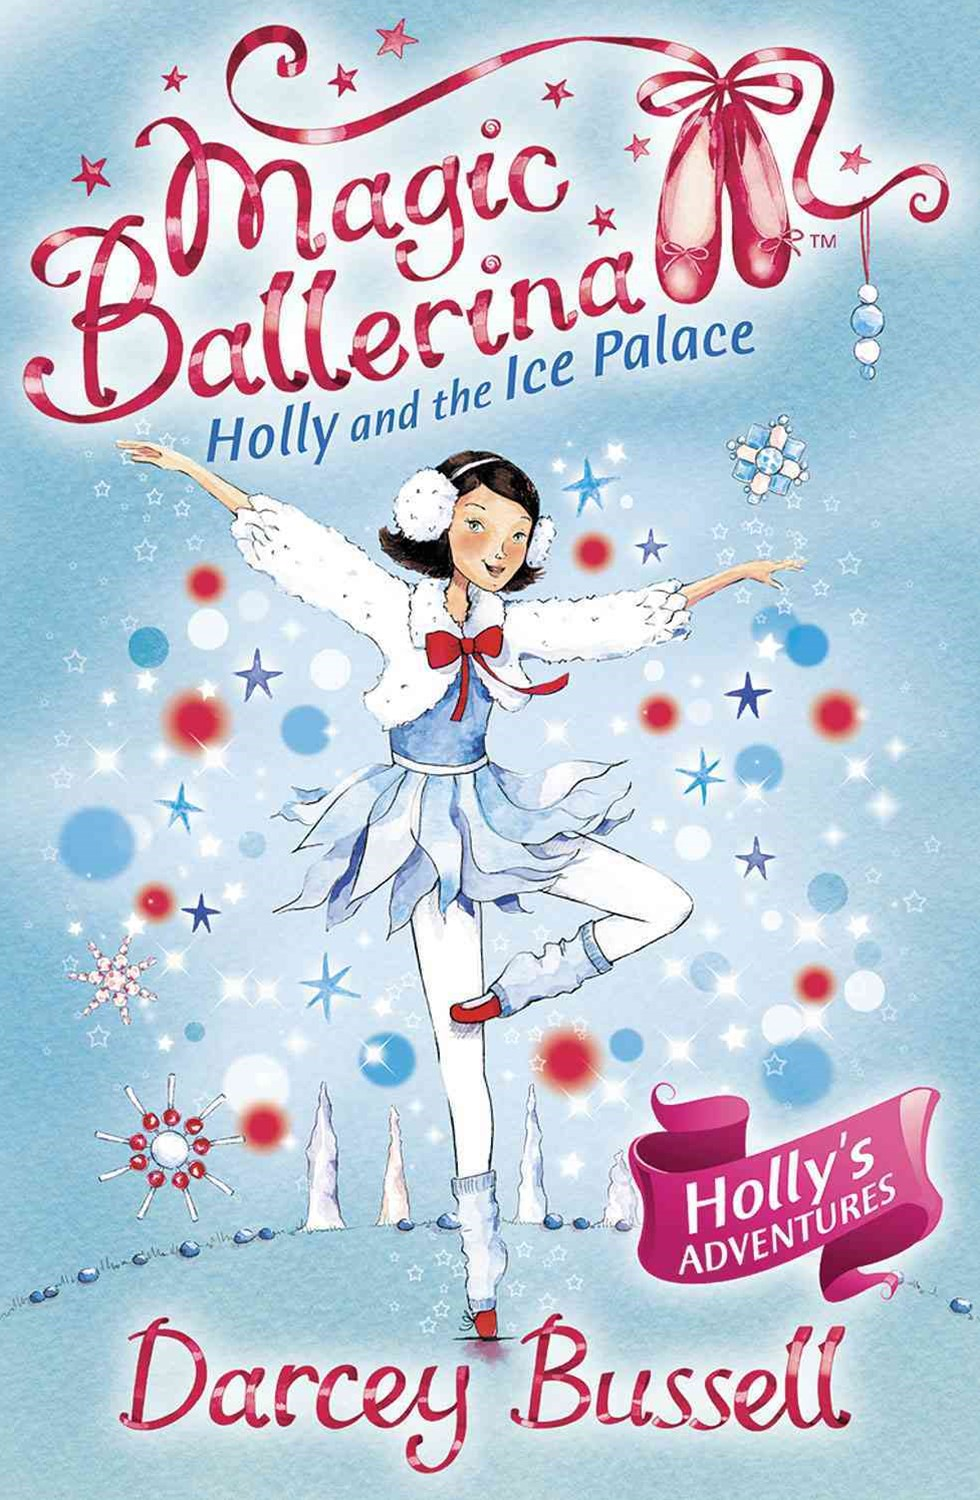 Holly and the Ice Palace